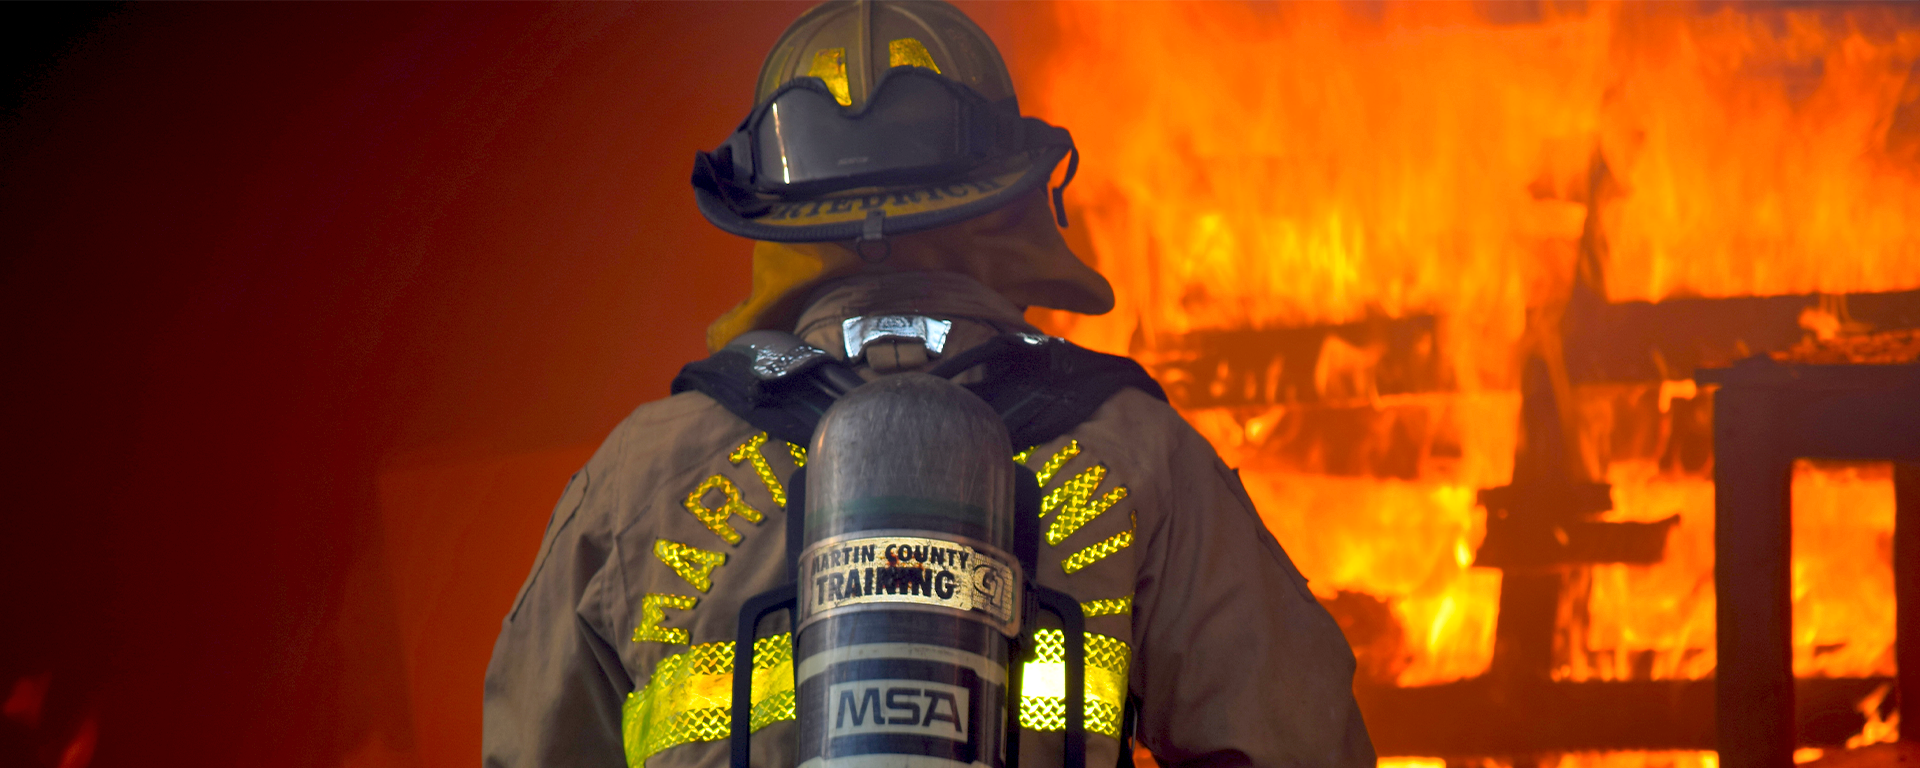 A firefighter working to extinguish a blaze